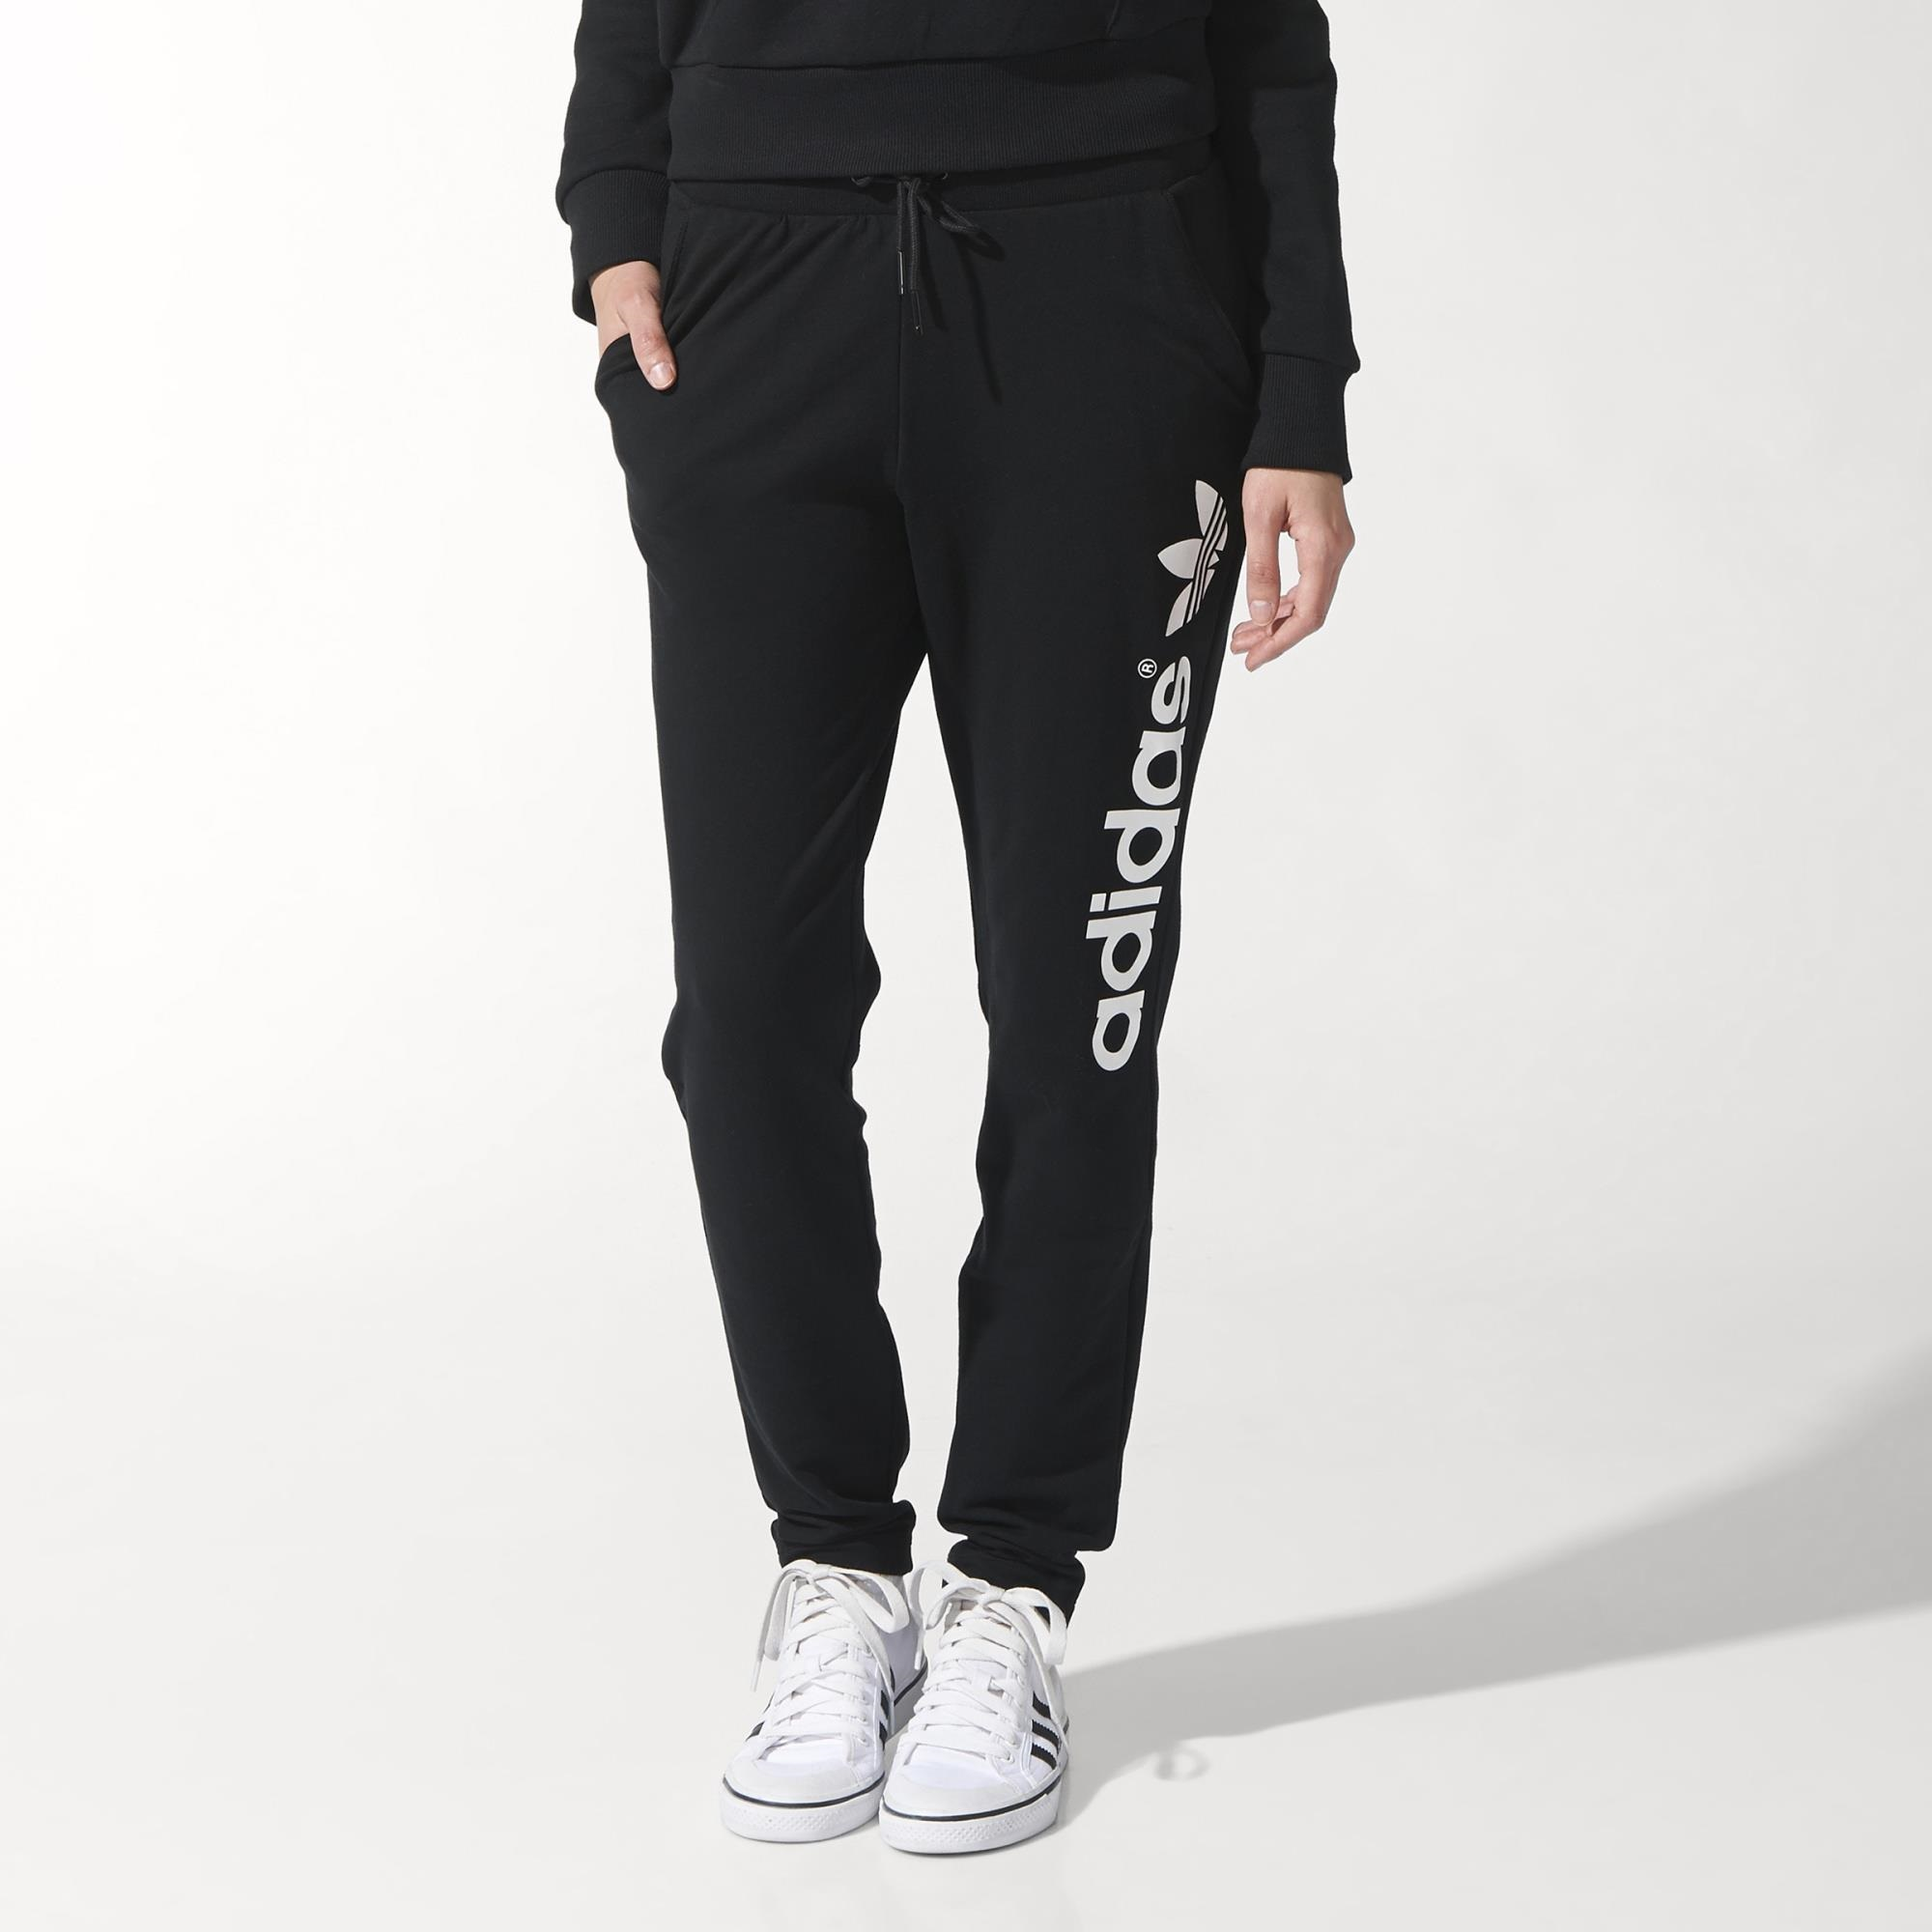 Creative Light Logo Sweatpants For Women By Adidas  Women39s Apparel